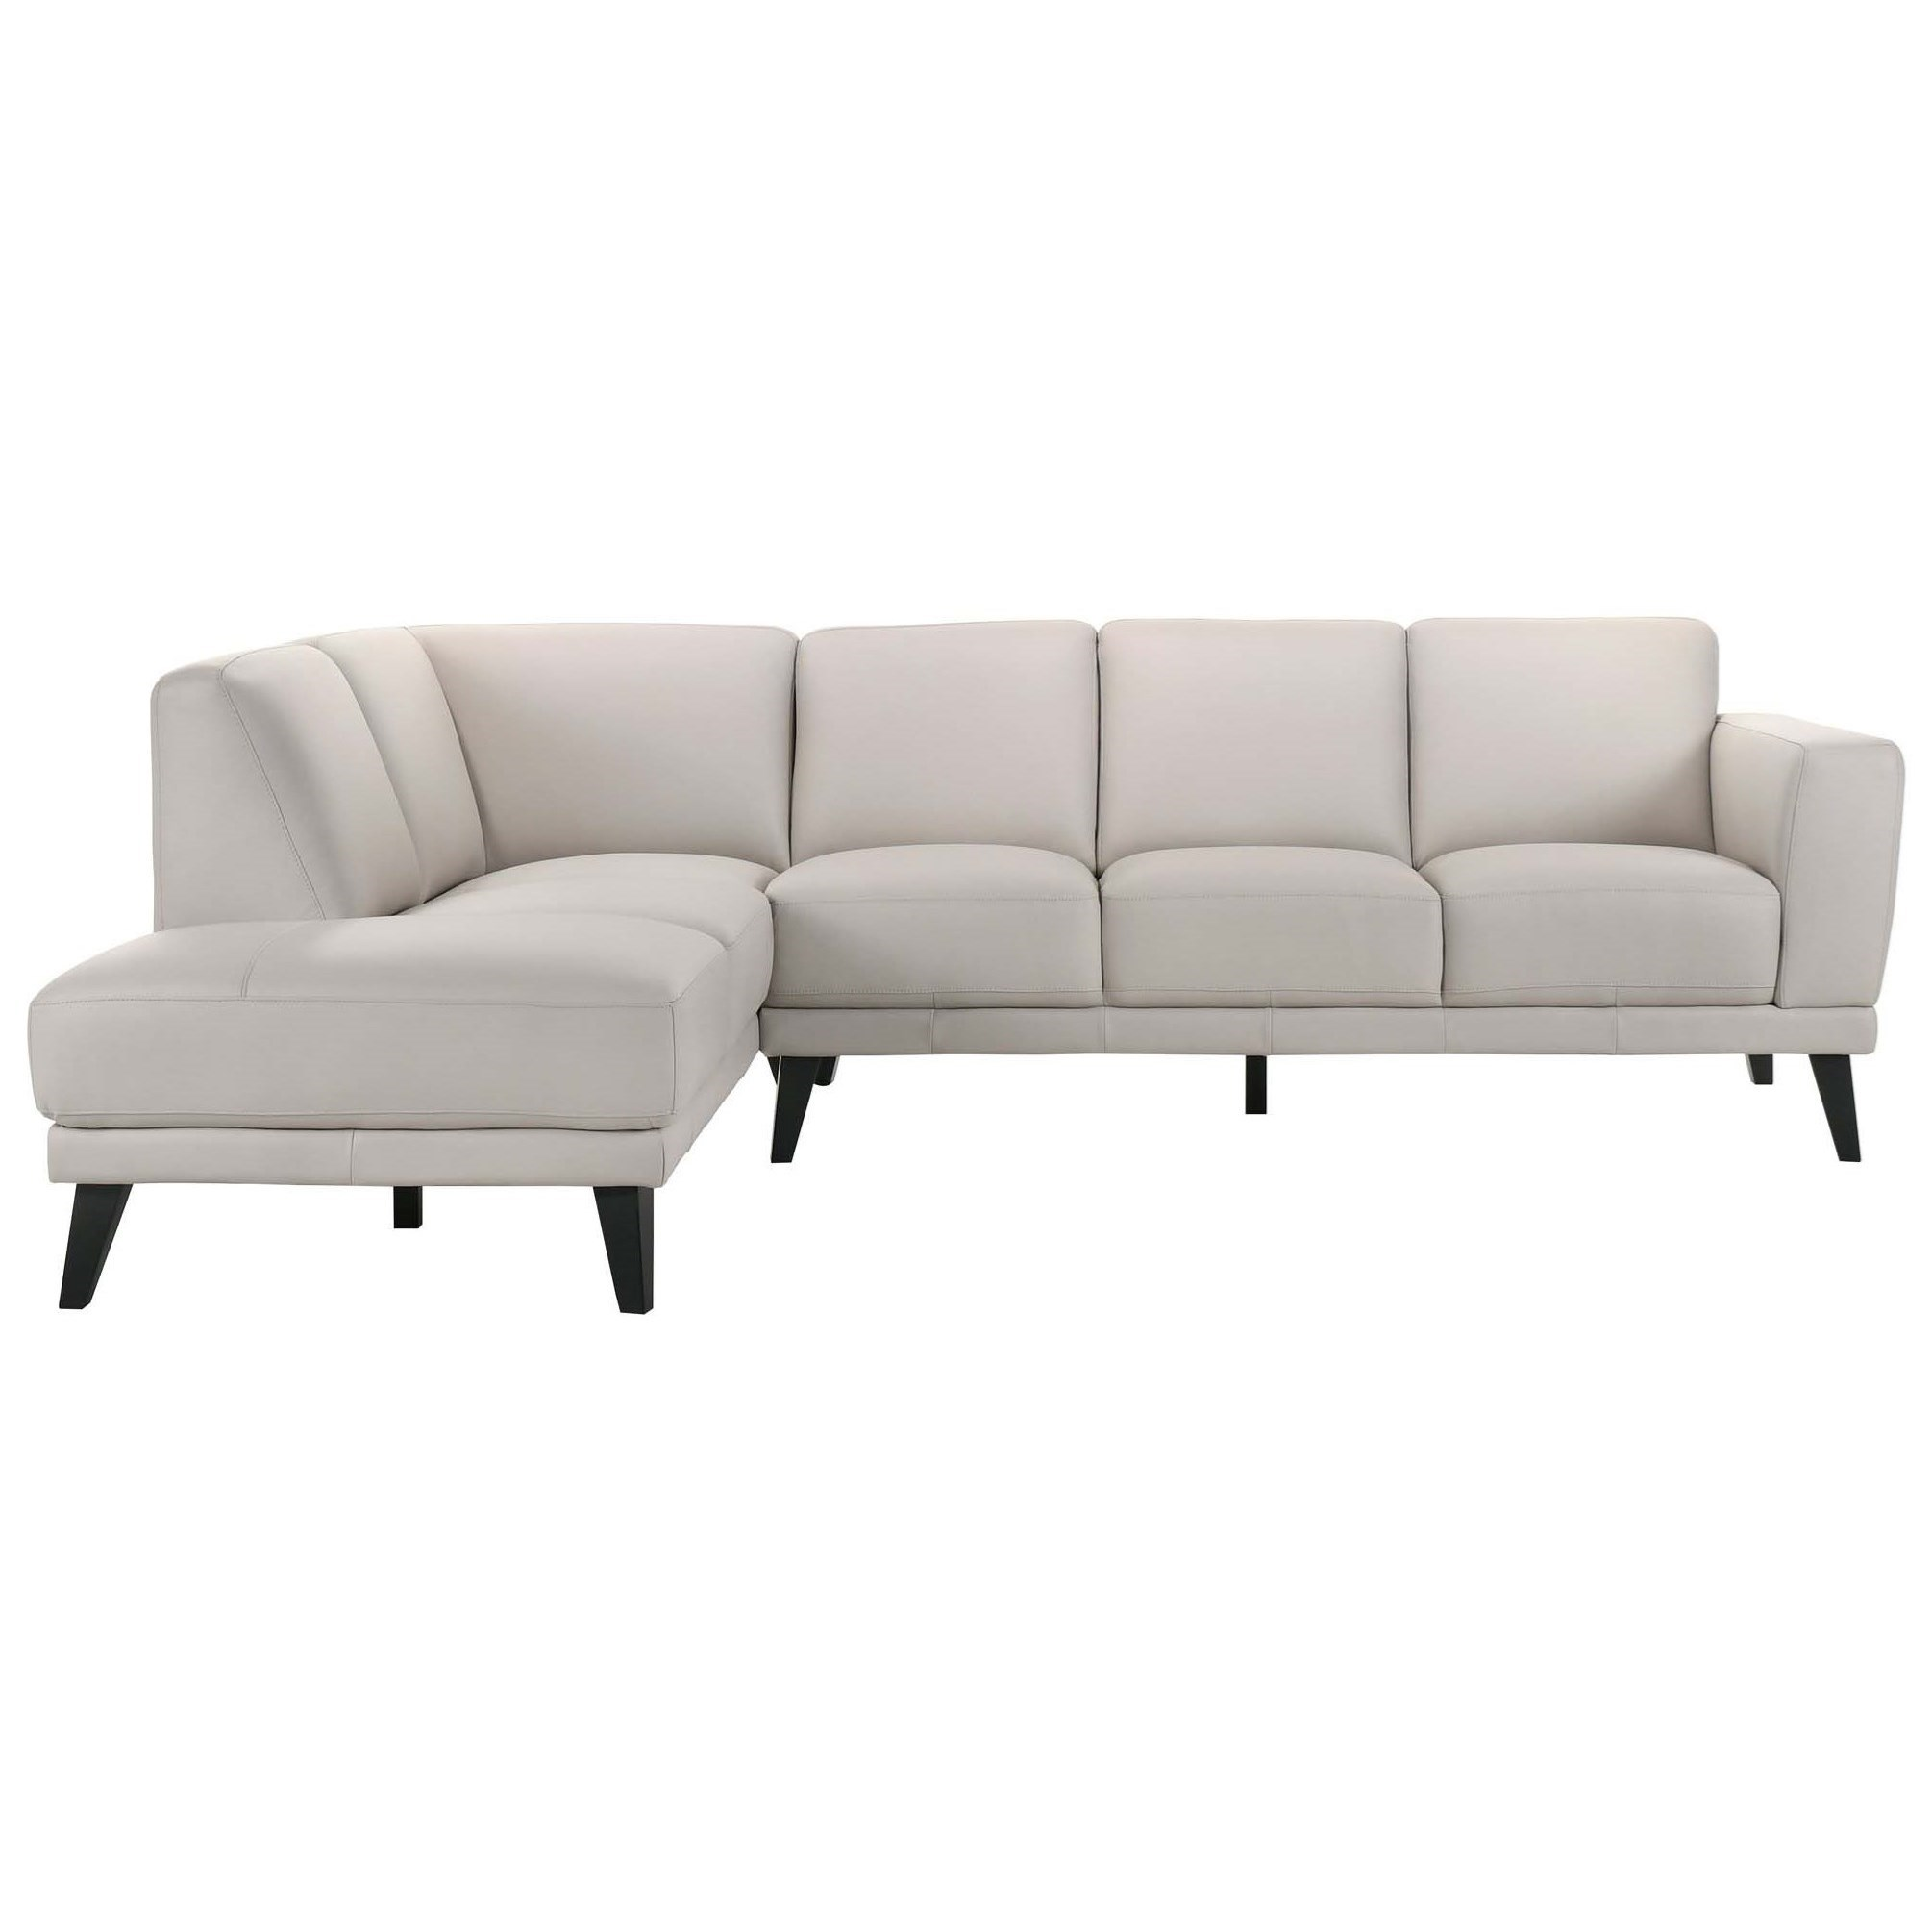 Altamura 5-Seat Sectional w/ LAF Chaise by New Classic at Rife's Home Furniture